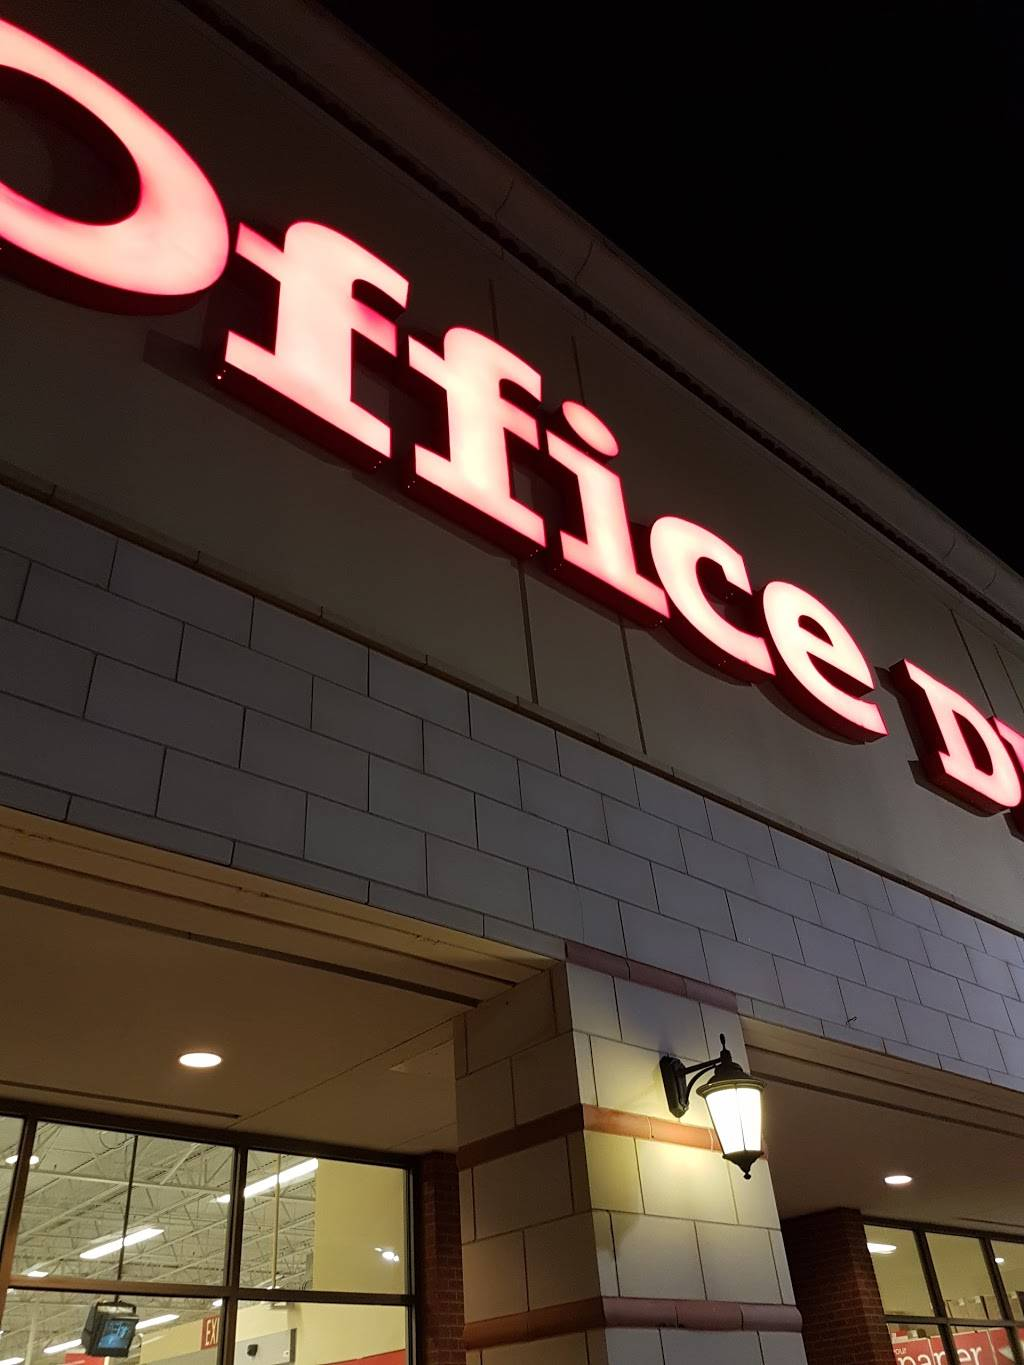 Office Depot - electronics store  | Photo 10 of 10 | Address: 401 Carroll St, Fort Worth, TX 76107, USA | Phone: (817) 885-7868